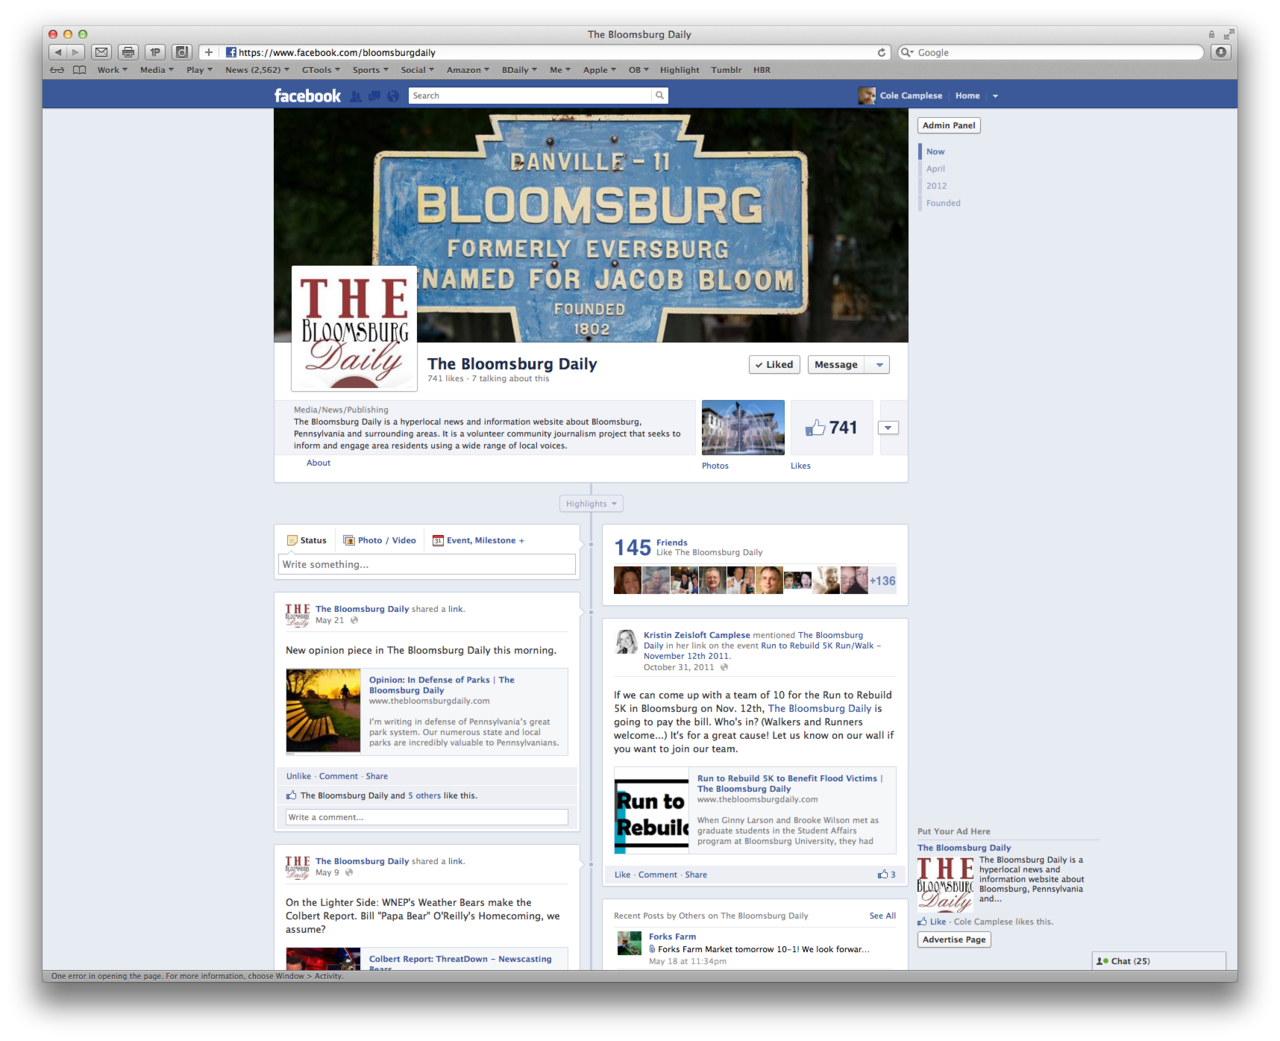 A true labor of love, The Bloomsburg Daily continues to move forward. We now are getting submissions for Op/Eds from people in and around Bloomsburg, stories from Bloomsburg University students, and updates from various local organizations.  I continue to feel good about our infrastructure and those providing it.  Our social media integration continues to thrive as well.  We are planning updates of the events calendar, classifieds, and mobile tools. In addition we are in the midsts of several new ventures around TBD that will hopefully continue to make it something people who care about Bloomsburg can remain proud of. I know that those of us working on it behind the scenes certainly are proud to be able to do it.